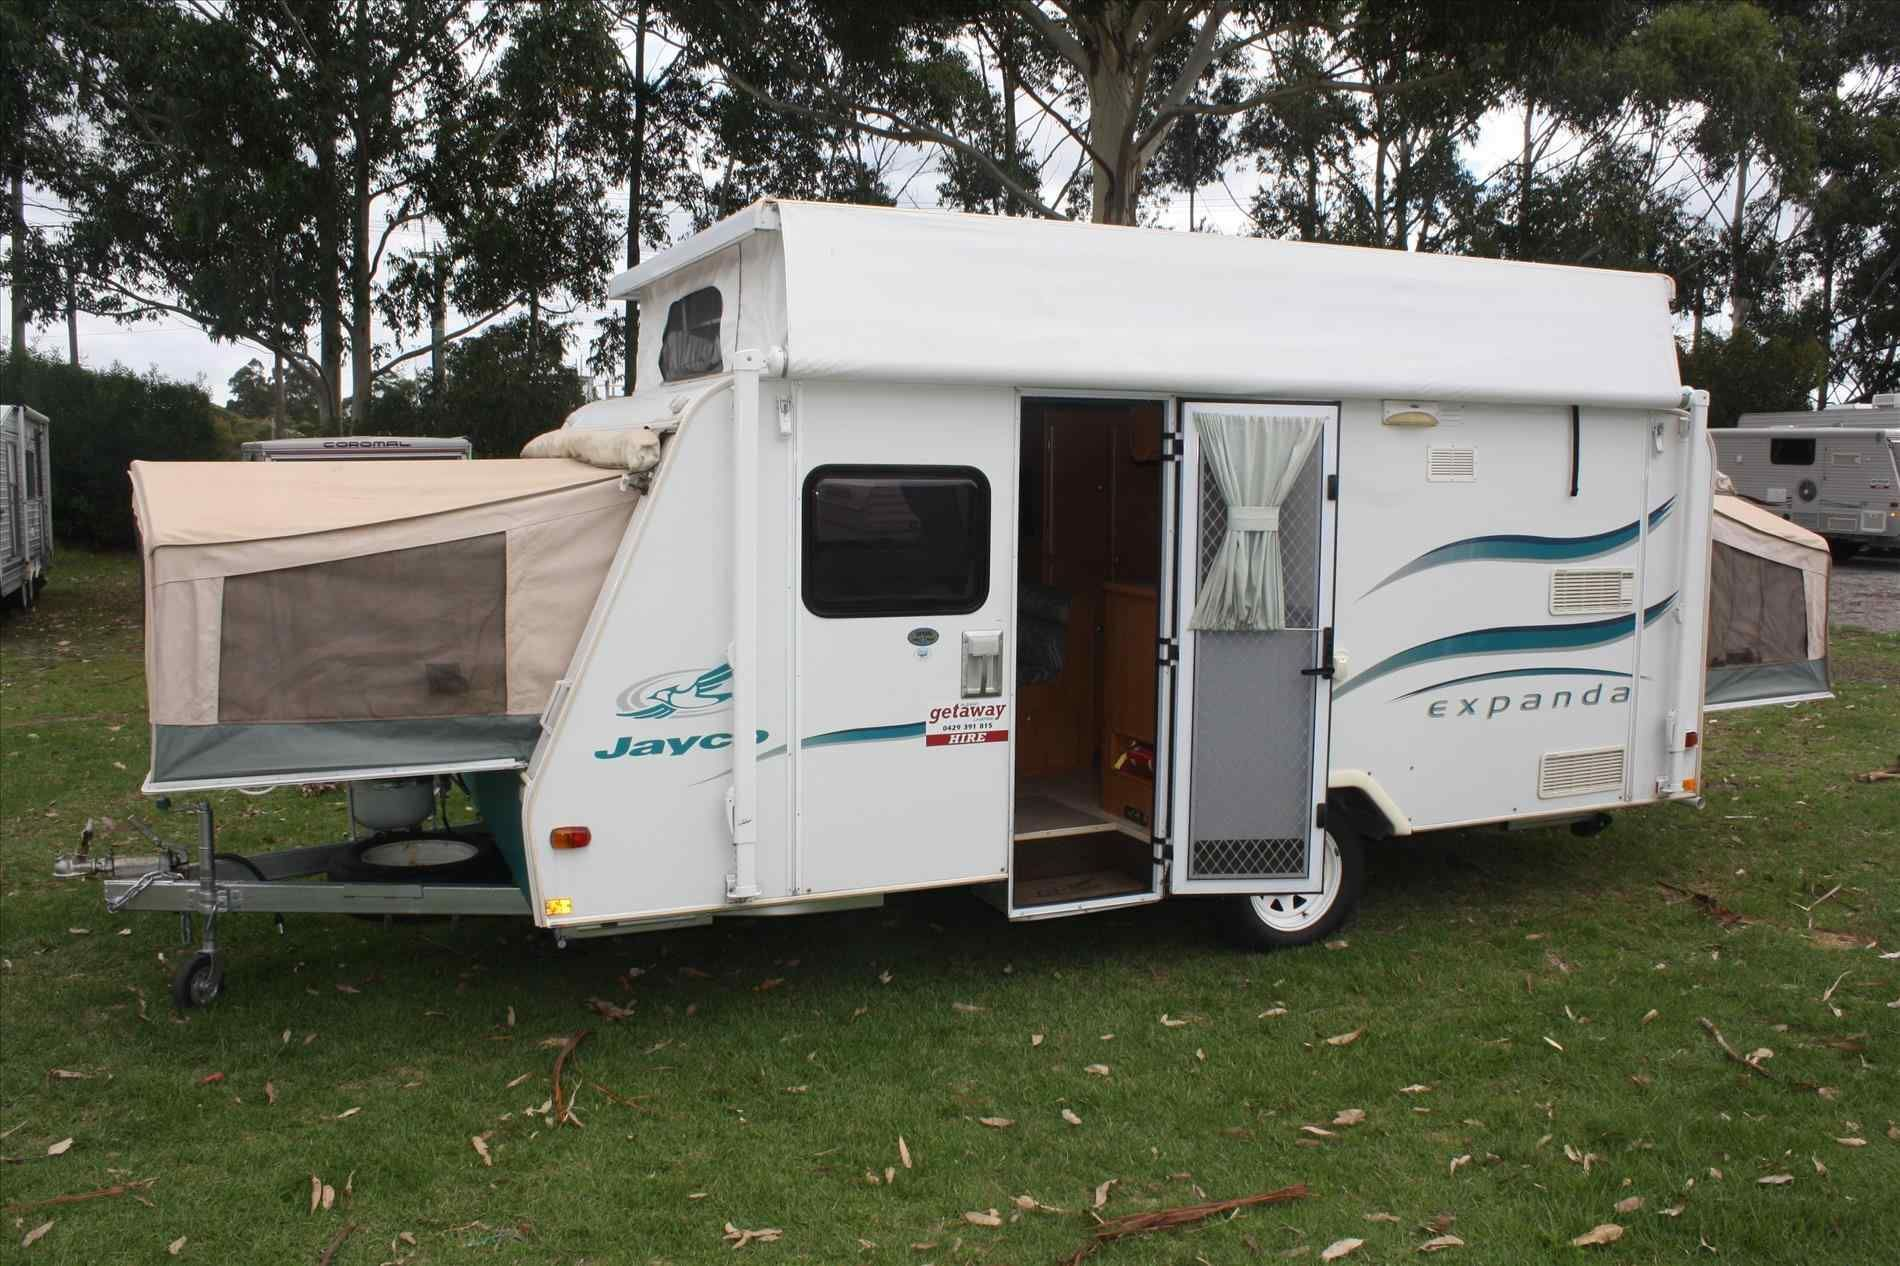 10 Top Camper Trailer With Toilet And Shower Camper Trailers